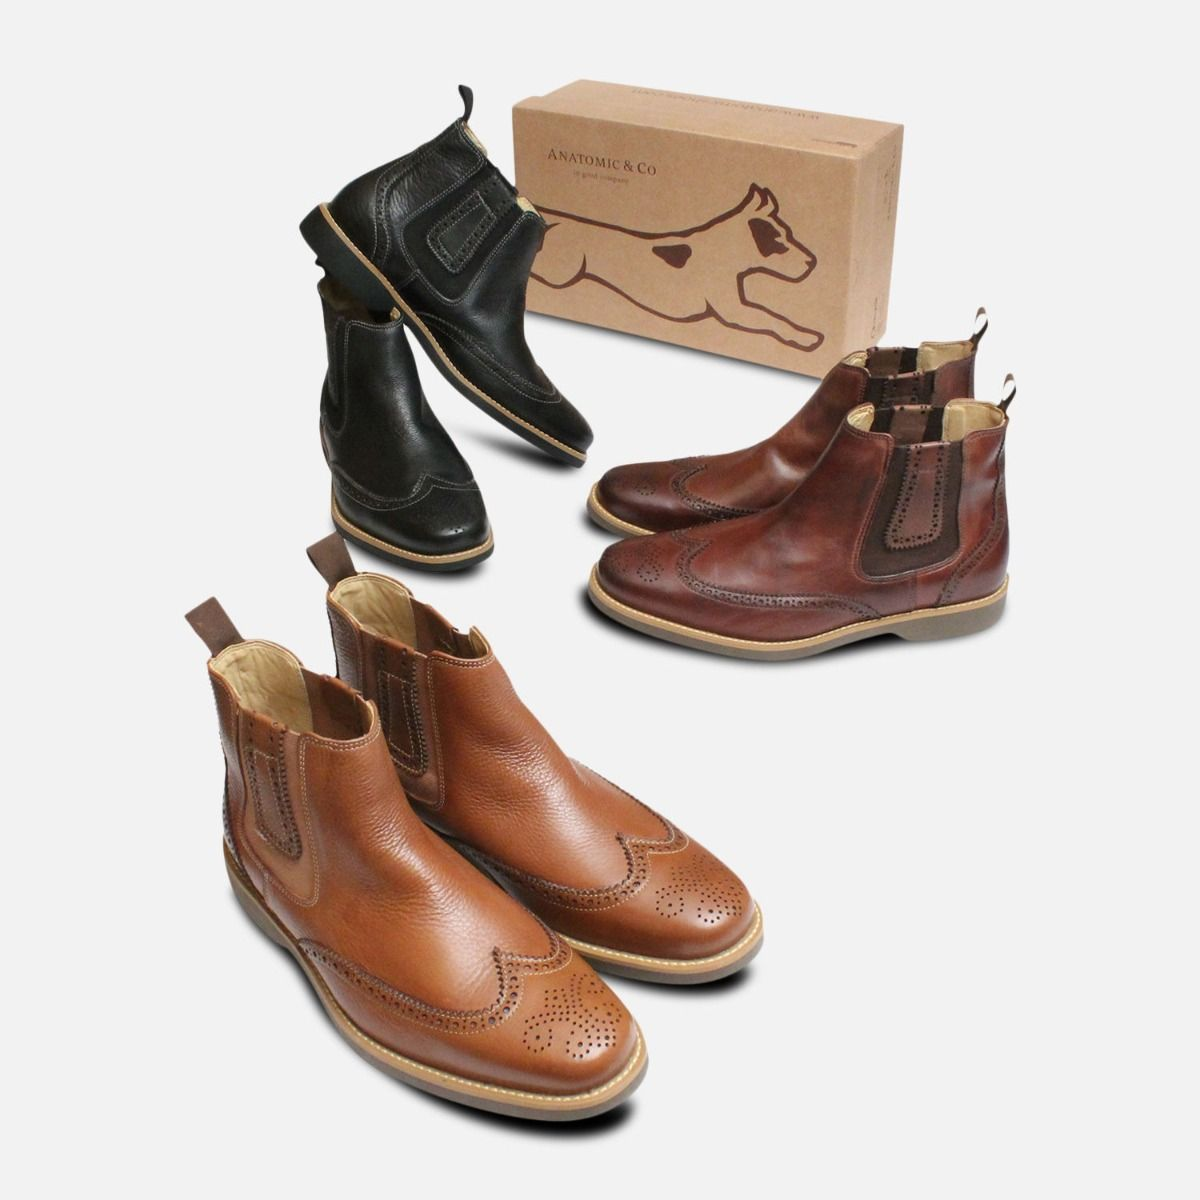 Cognac Wingtip Brogue Chelsea Boots by Anatomic Co